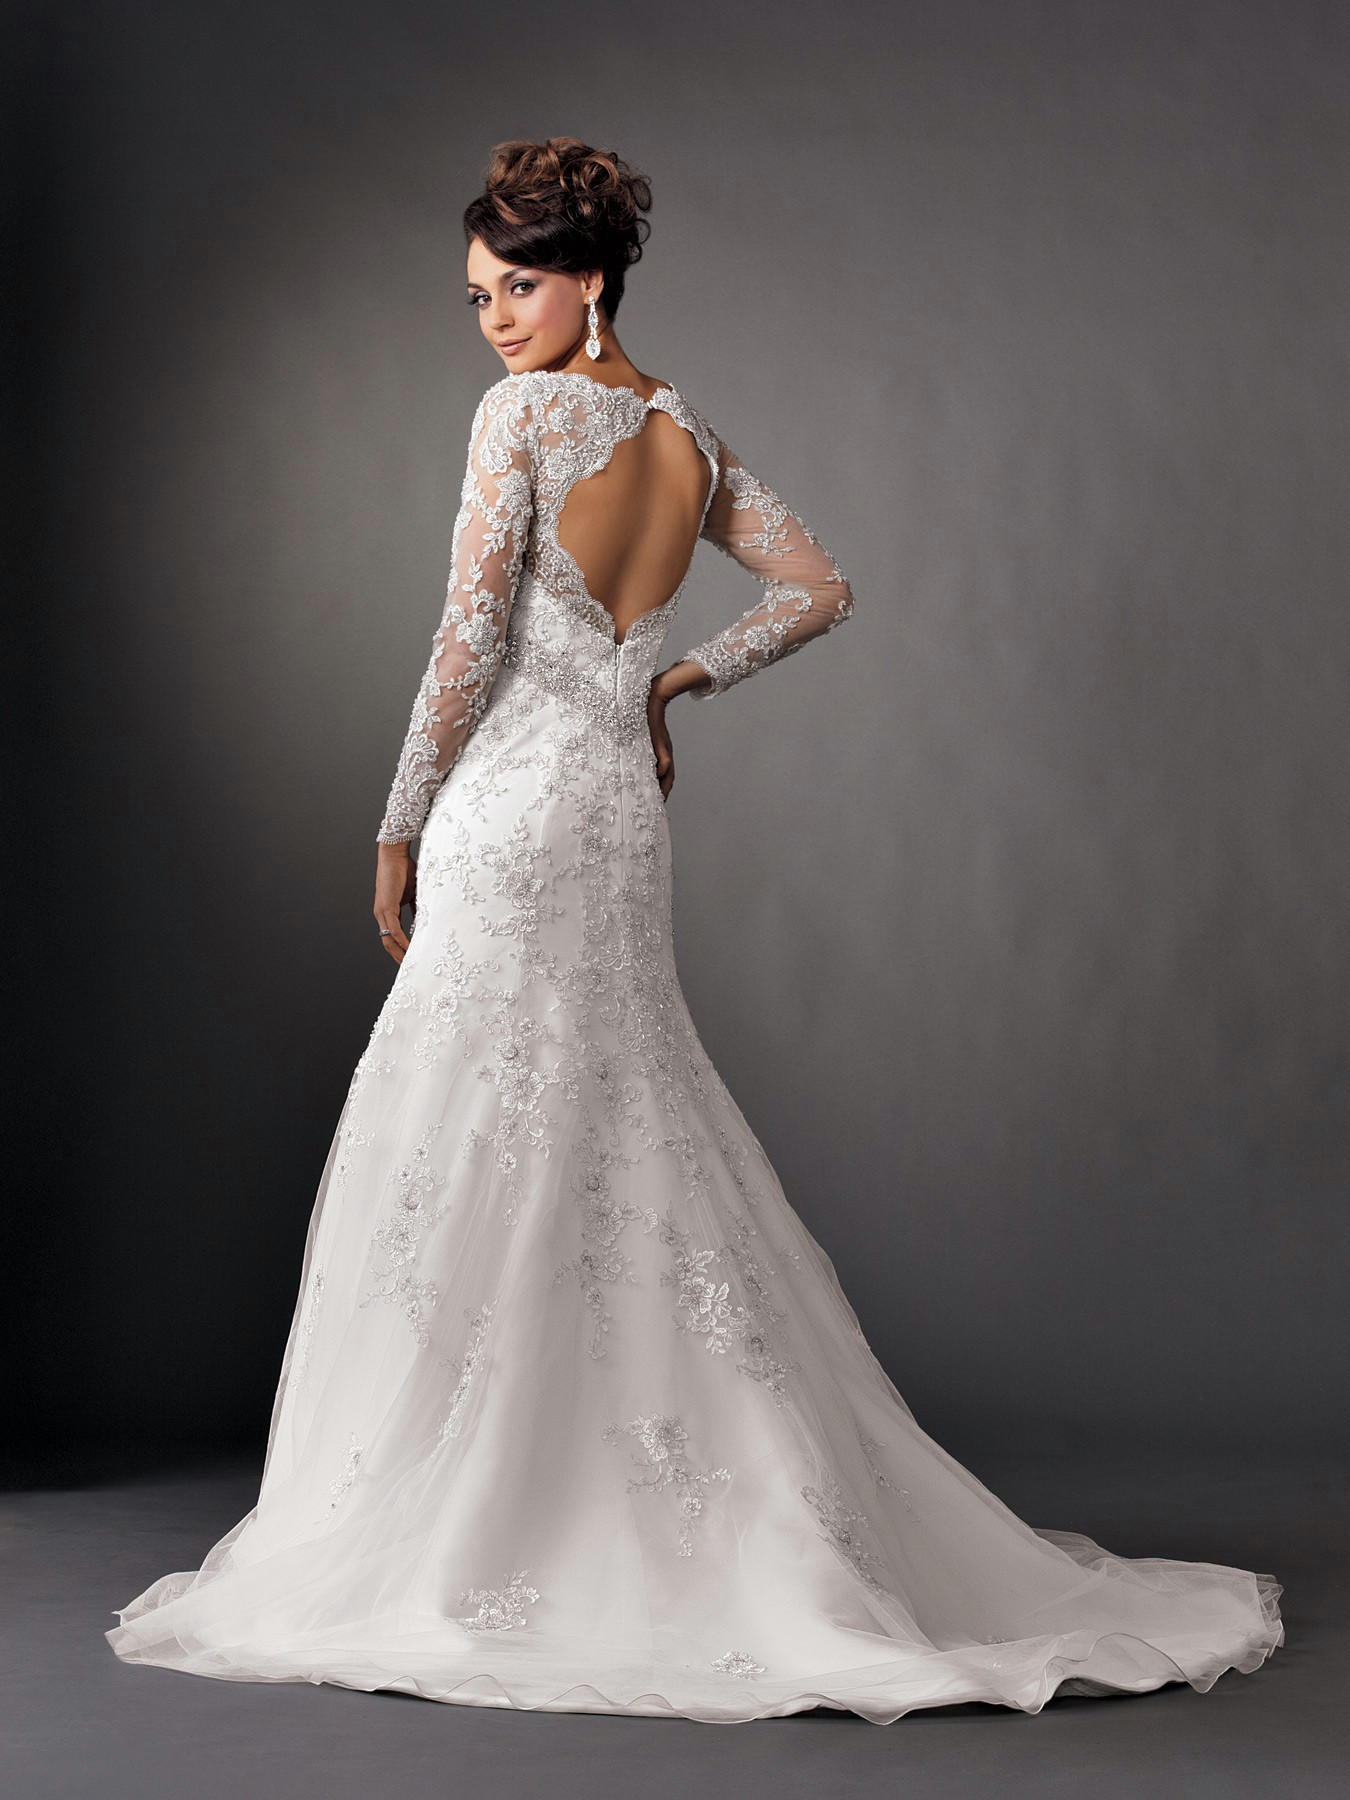 2014 2015 wedding dress trends lace sleeves dipped On lace long sleeved wedding dress